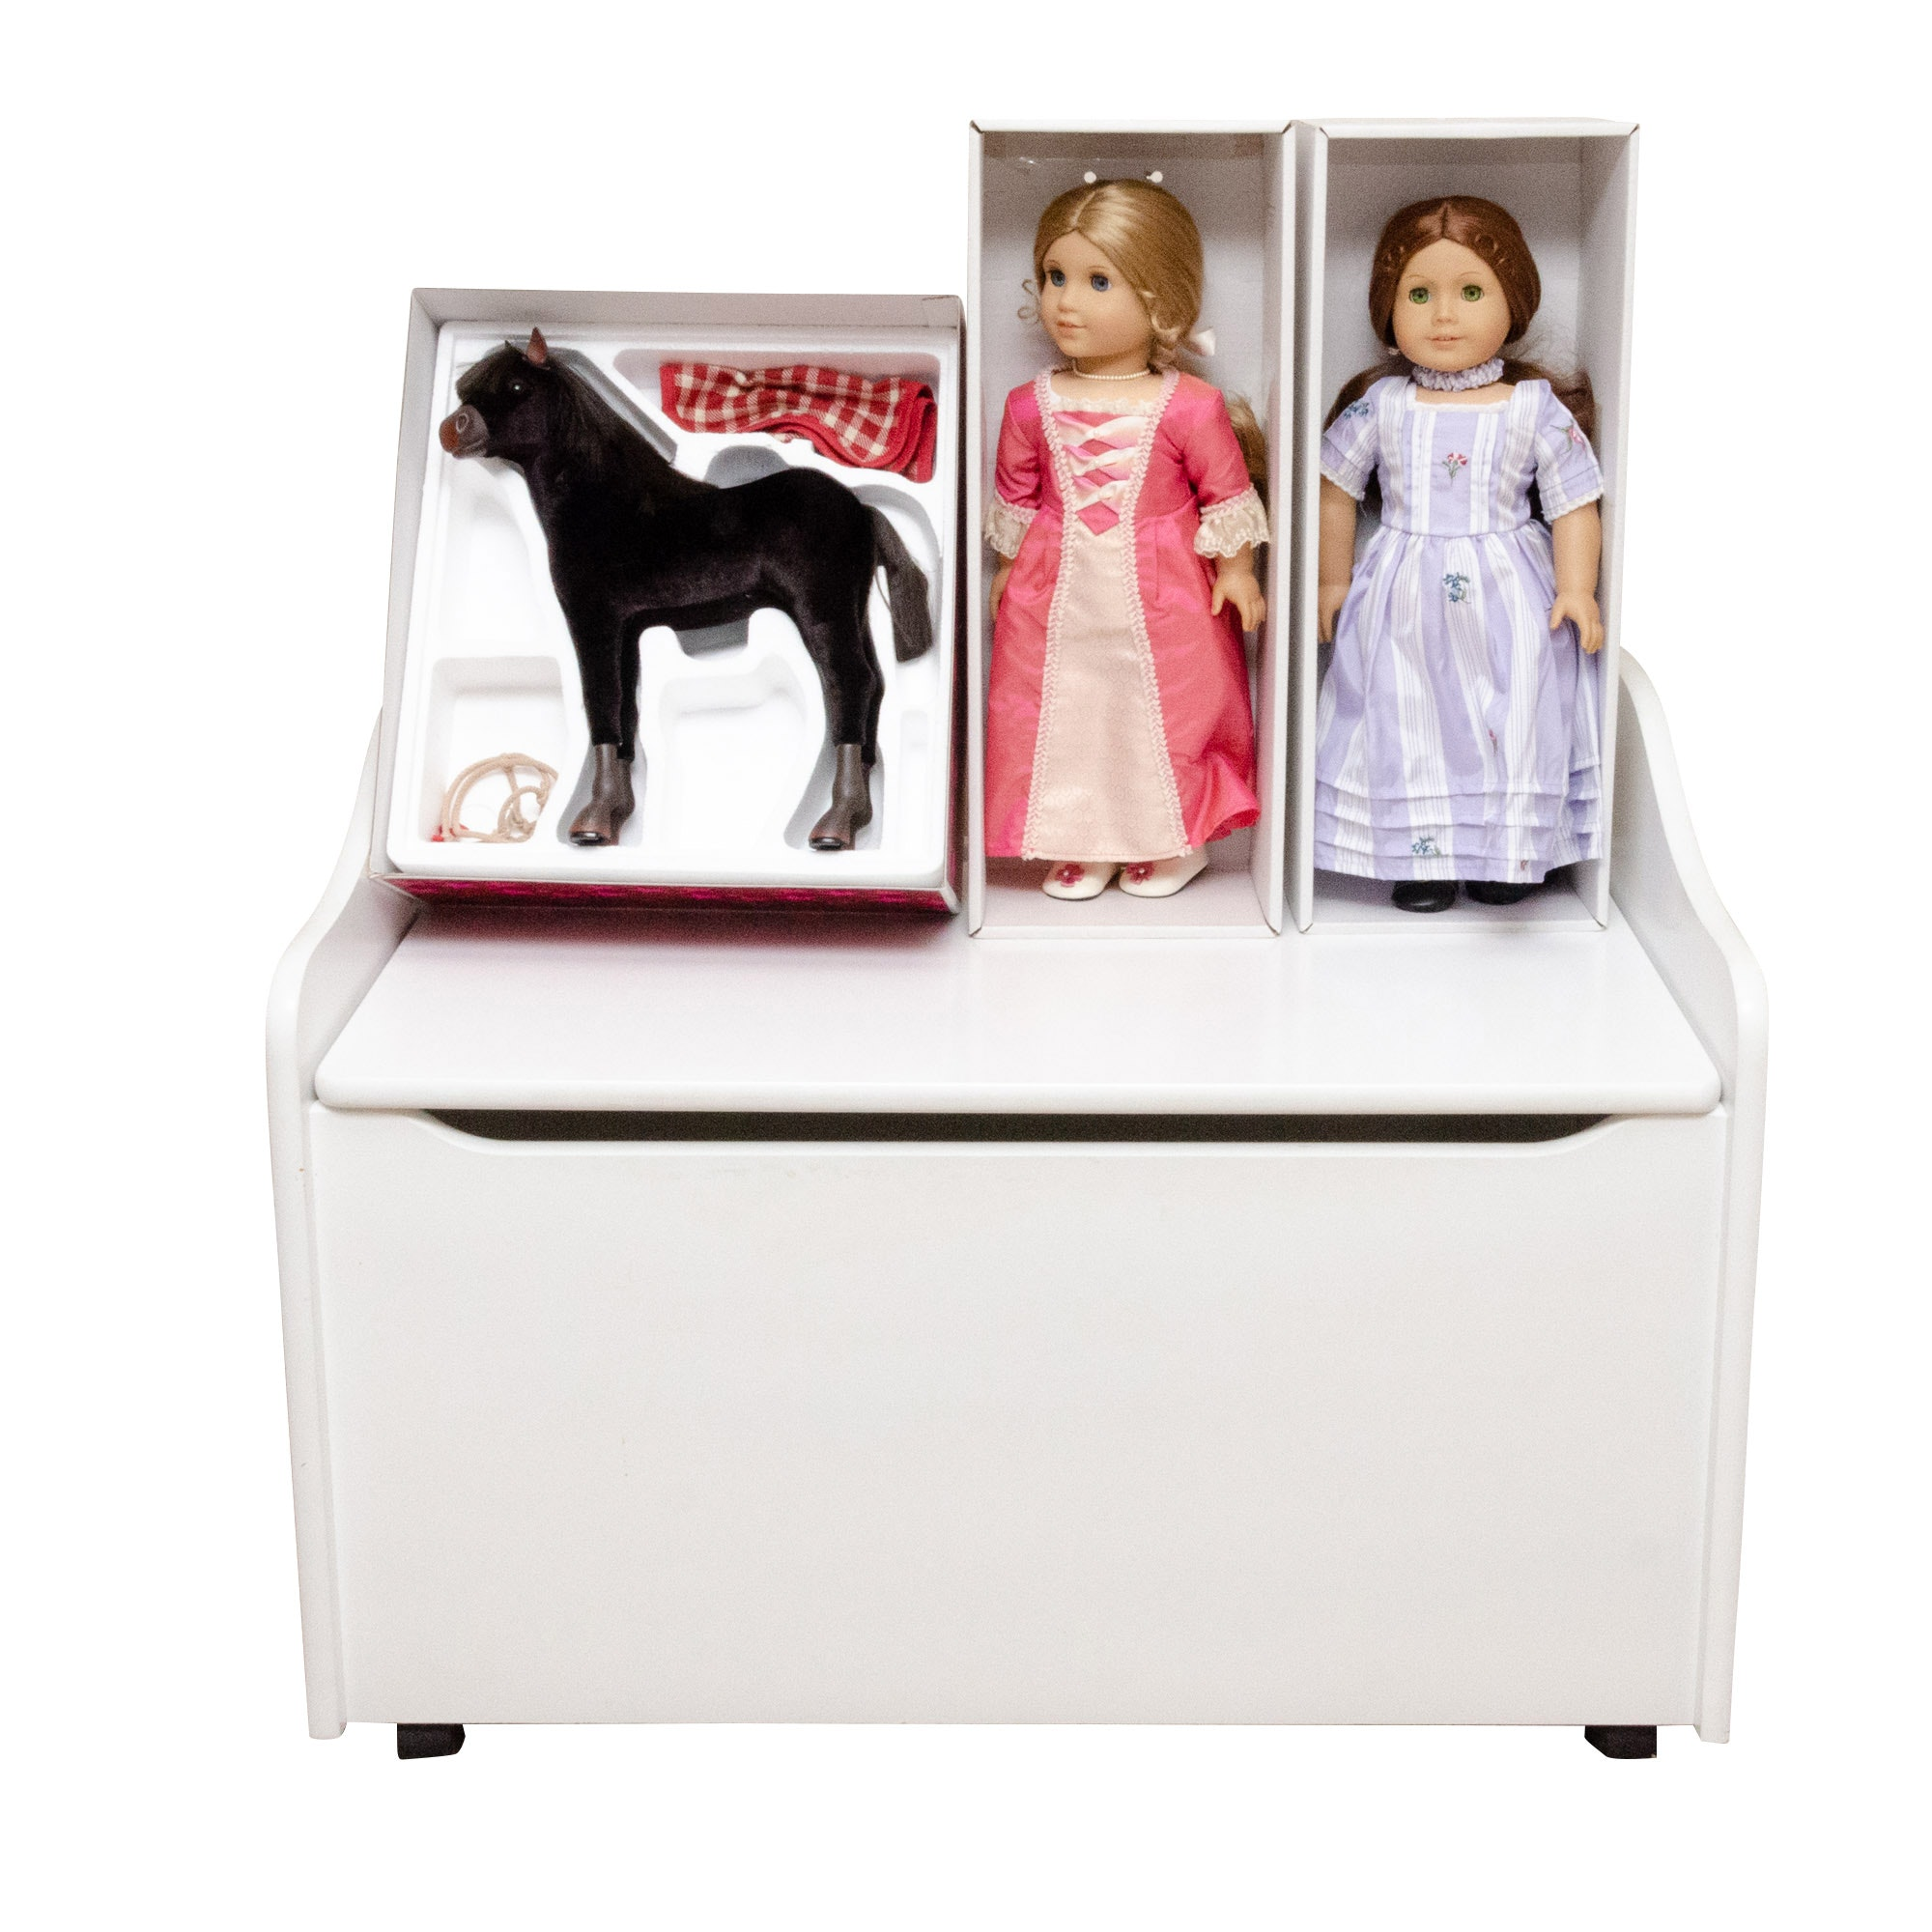 American Girl Dolls, Foal and Kidcraft Wooden Storage Bench